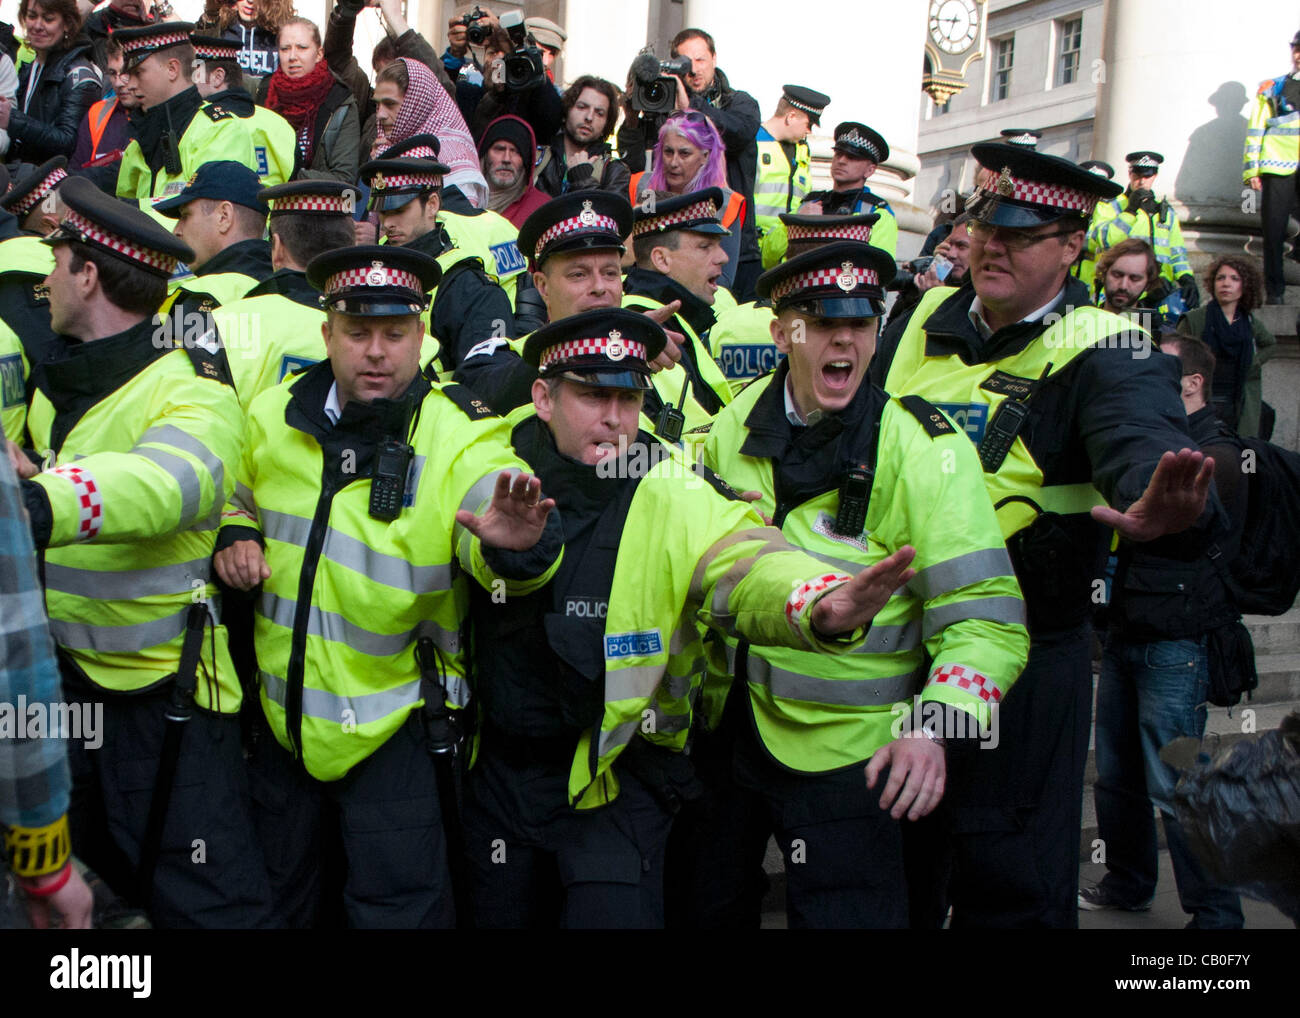 London, UK. 12/05/12. Police and Occupy protesters clash on the steps of the Royal Exchange in the City of London. - Stock Image